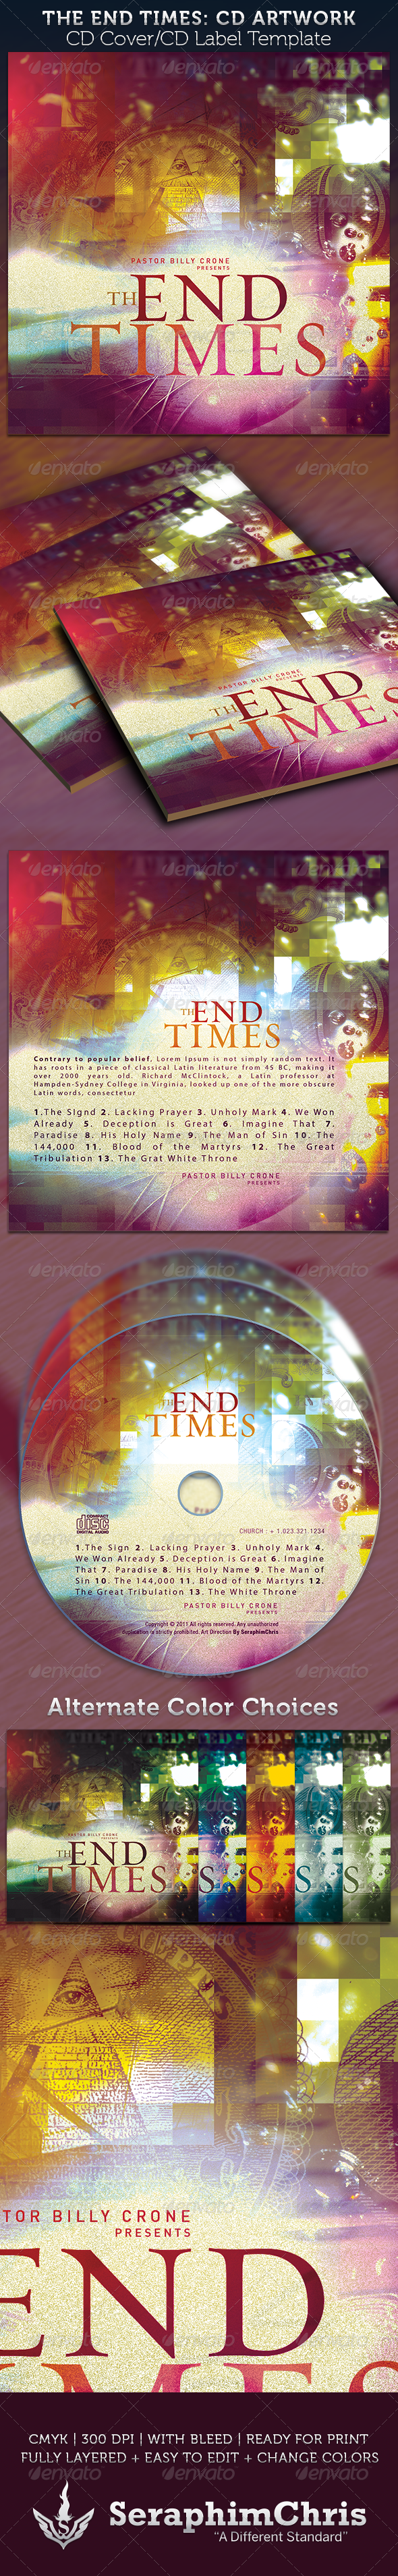 GraphicRiver The End Times CD Cover Artwork Template 3778322